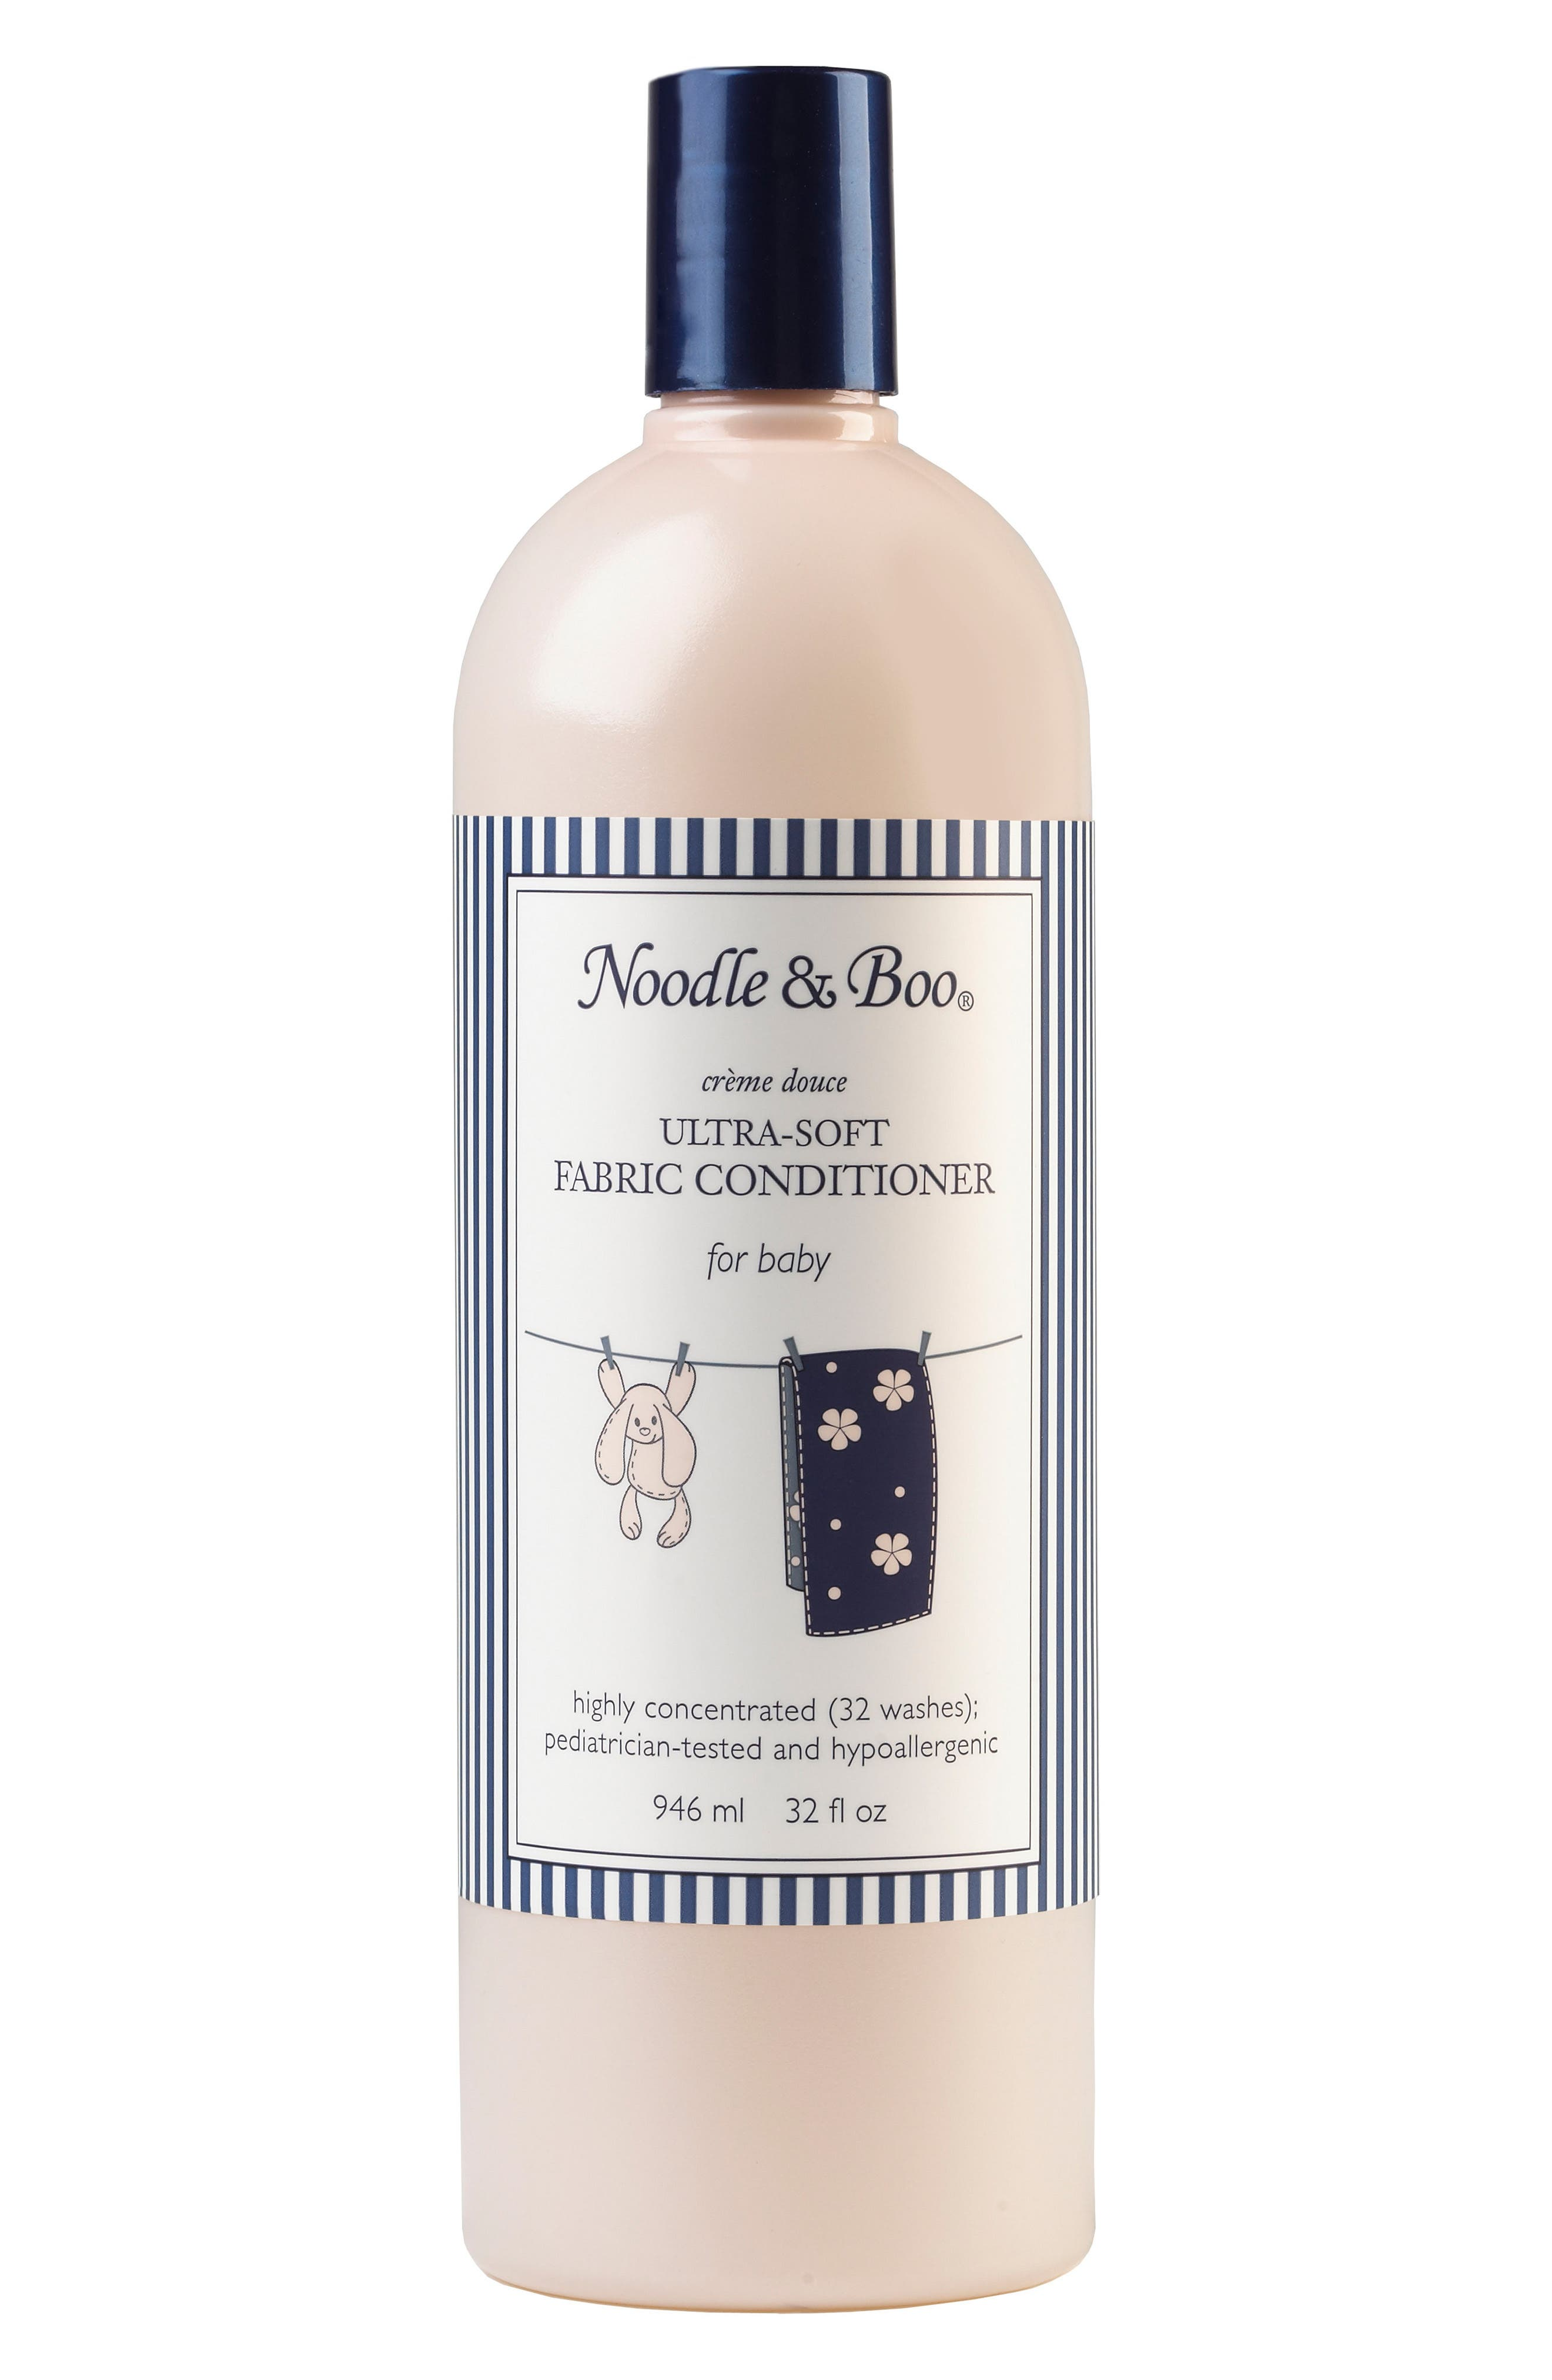 Noodle & Boo Ultra Soft Fabric Conditioner